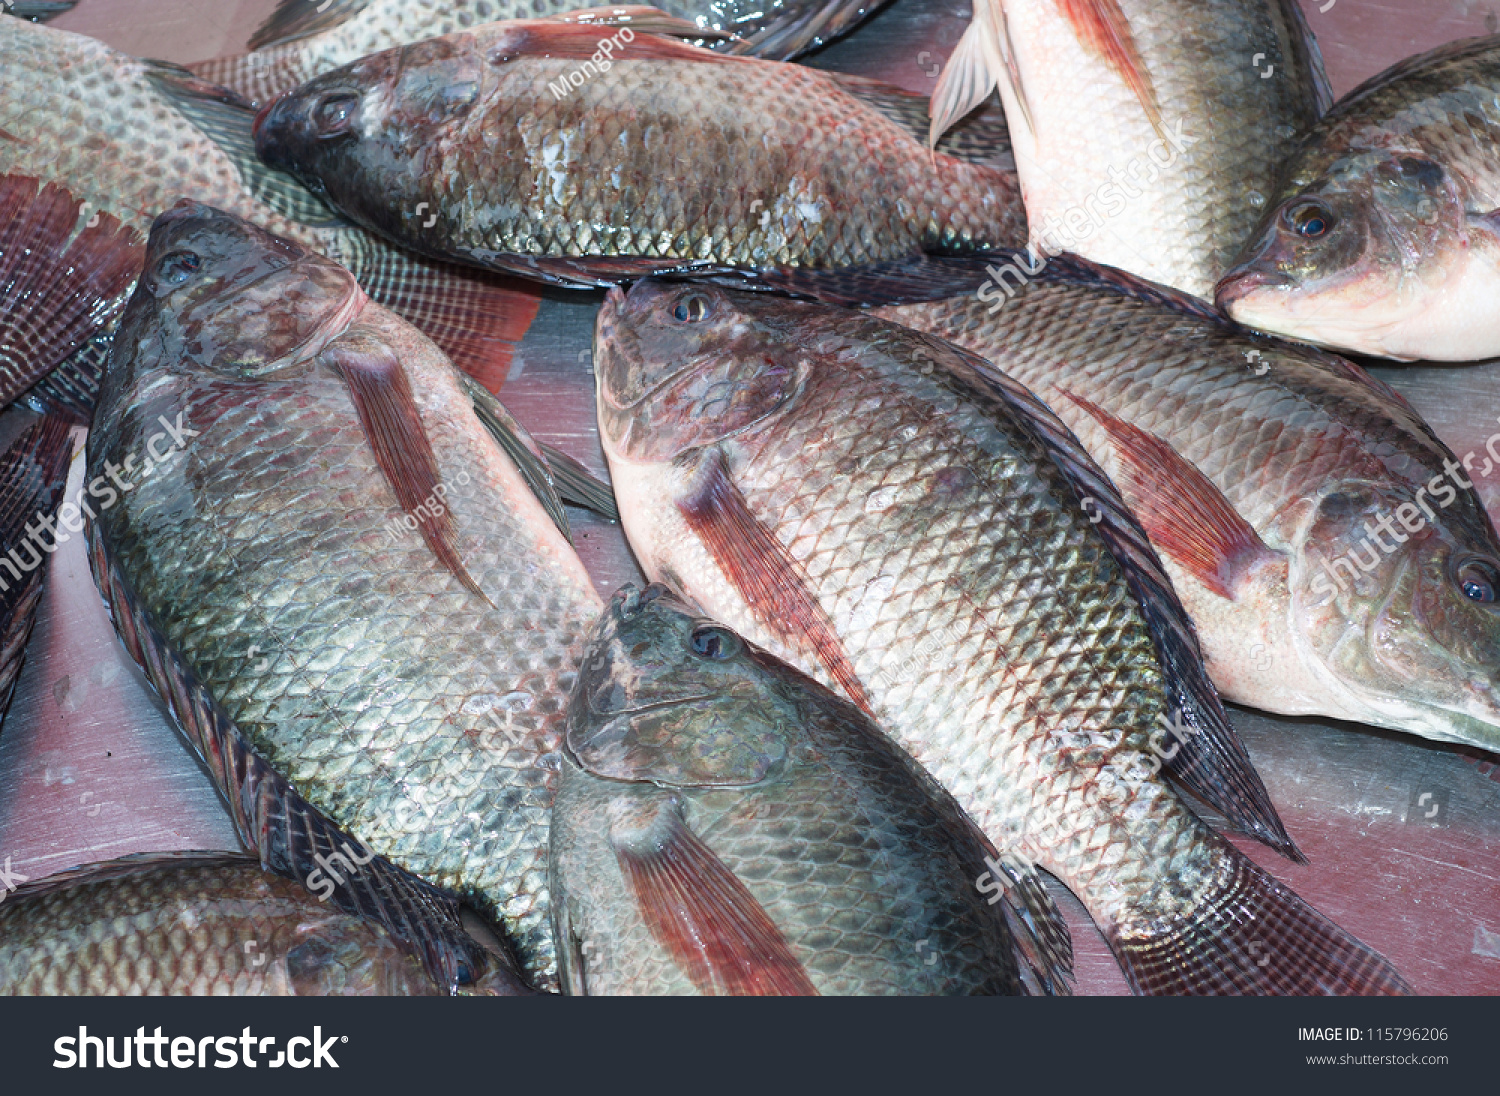 Freshwater fish malaysia - Nile Tilapia Fishes Freshness Ingredient Raw Gourmet Fish Seafood Fin Freshwater Fish Nile Tilapia Malaysia Food